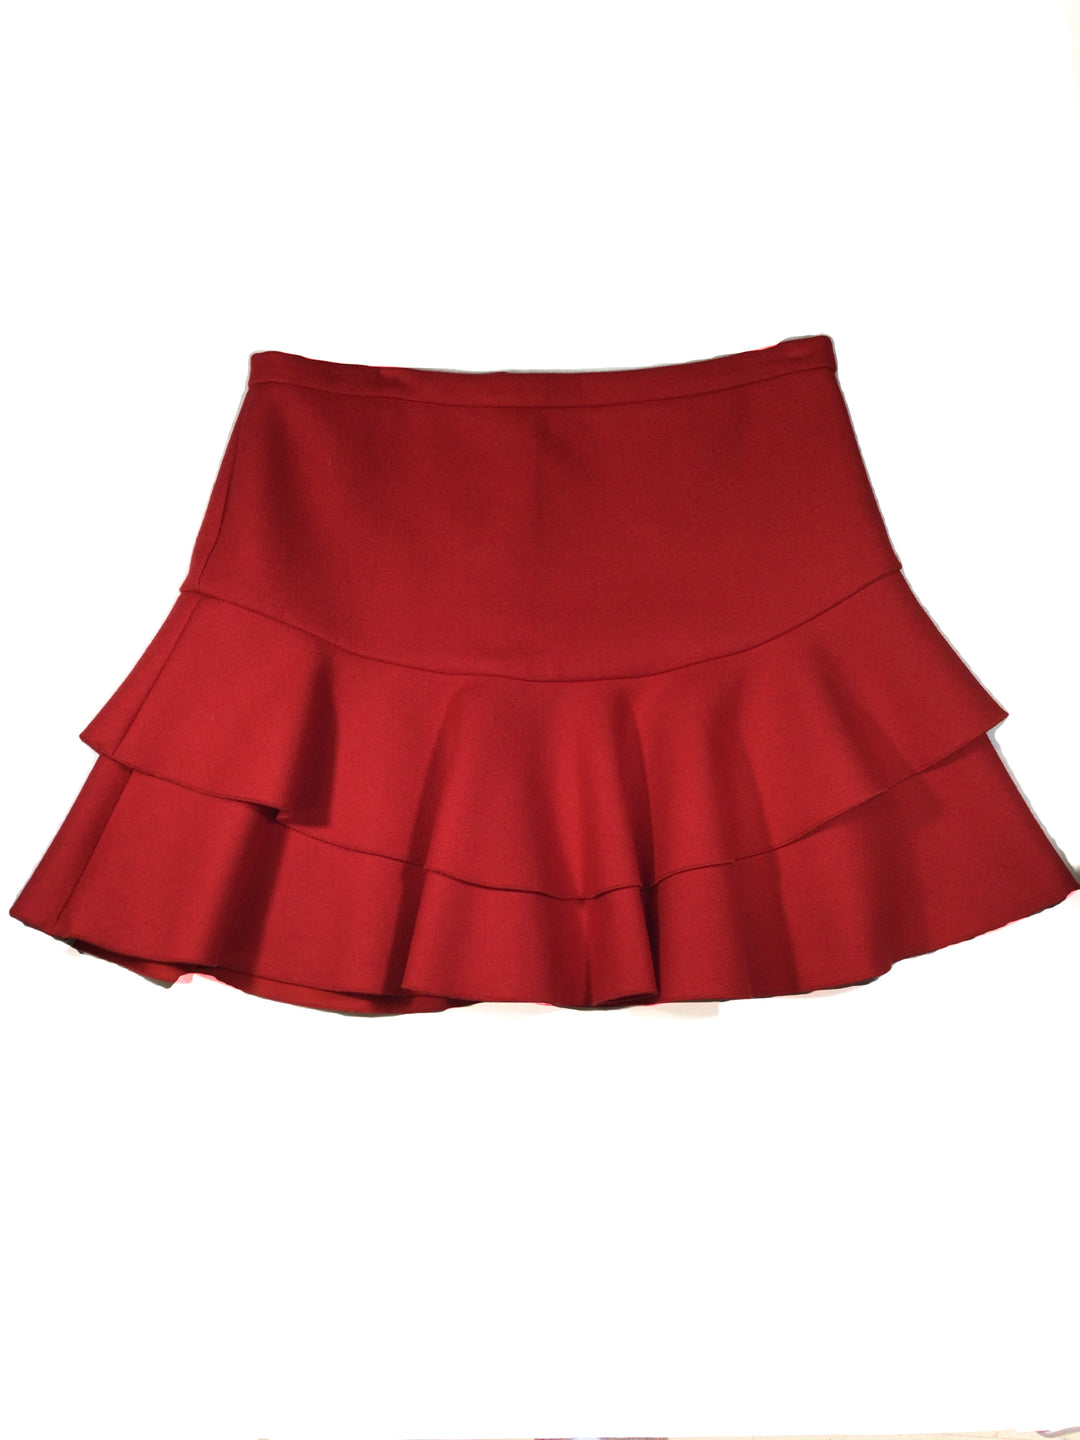 Primary Photo - BRAND: J CREW <BR>STYLE: SKIRT <BR>COLOR: RED <BR>SIZE: 6 <BR>SKU: 213-21394-36366